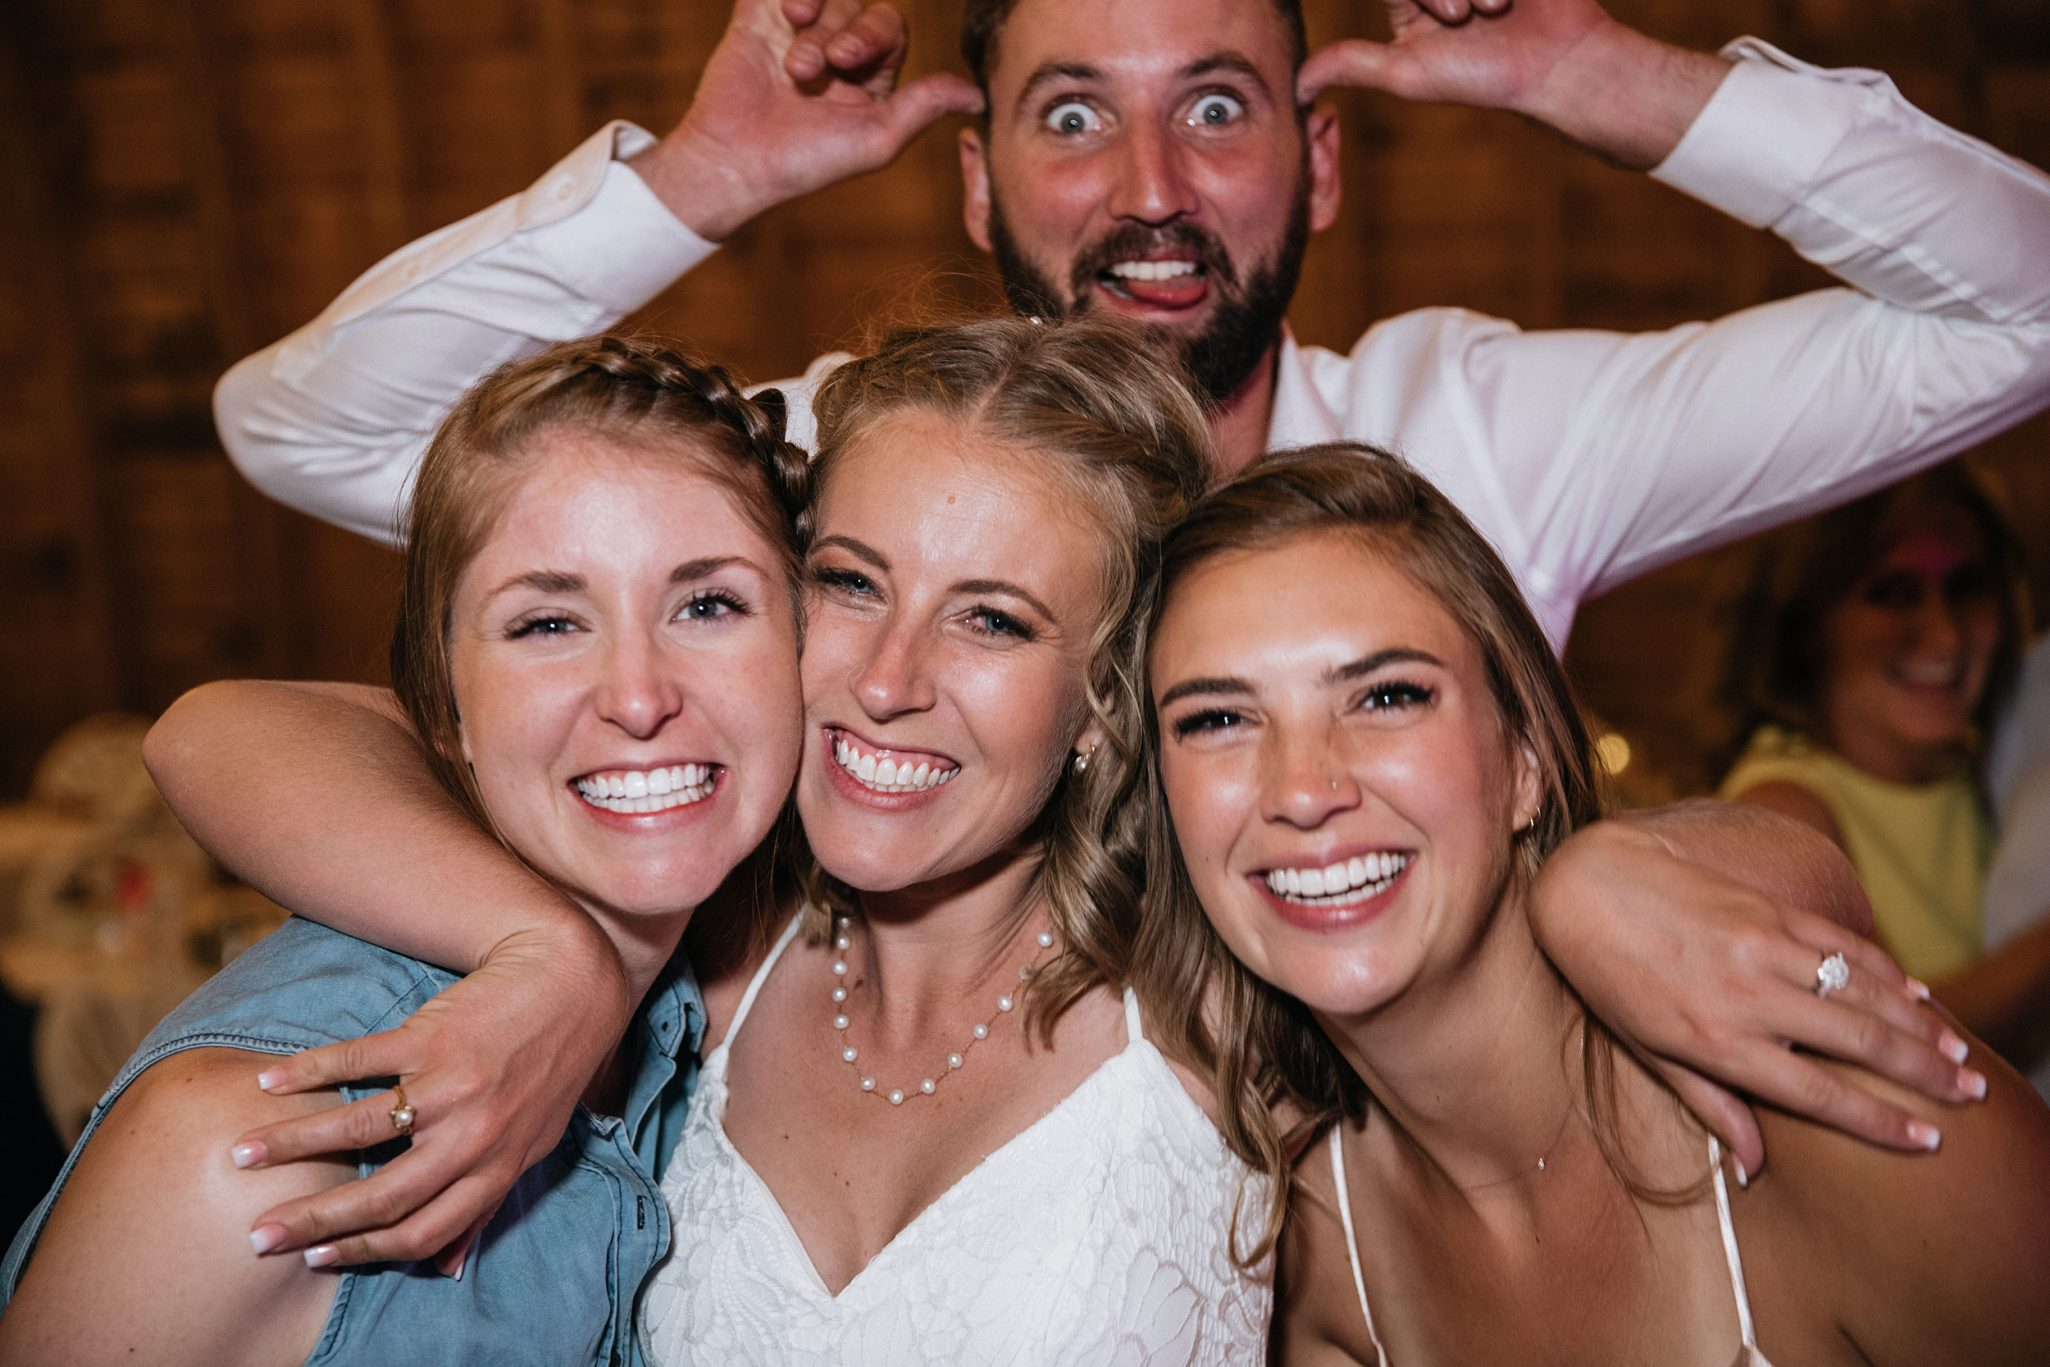 Wedding Reception photo booth fun at Reising Stage, Durango Colorado